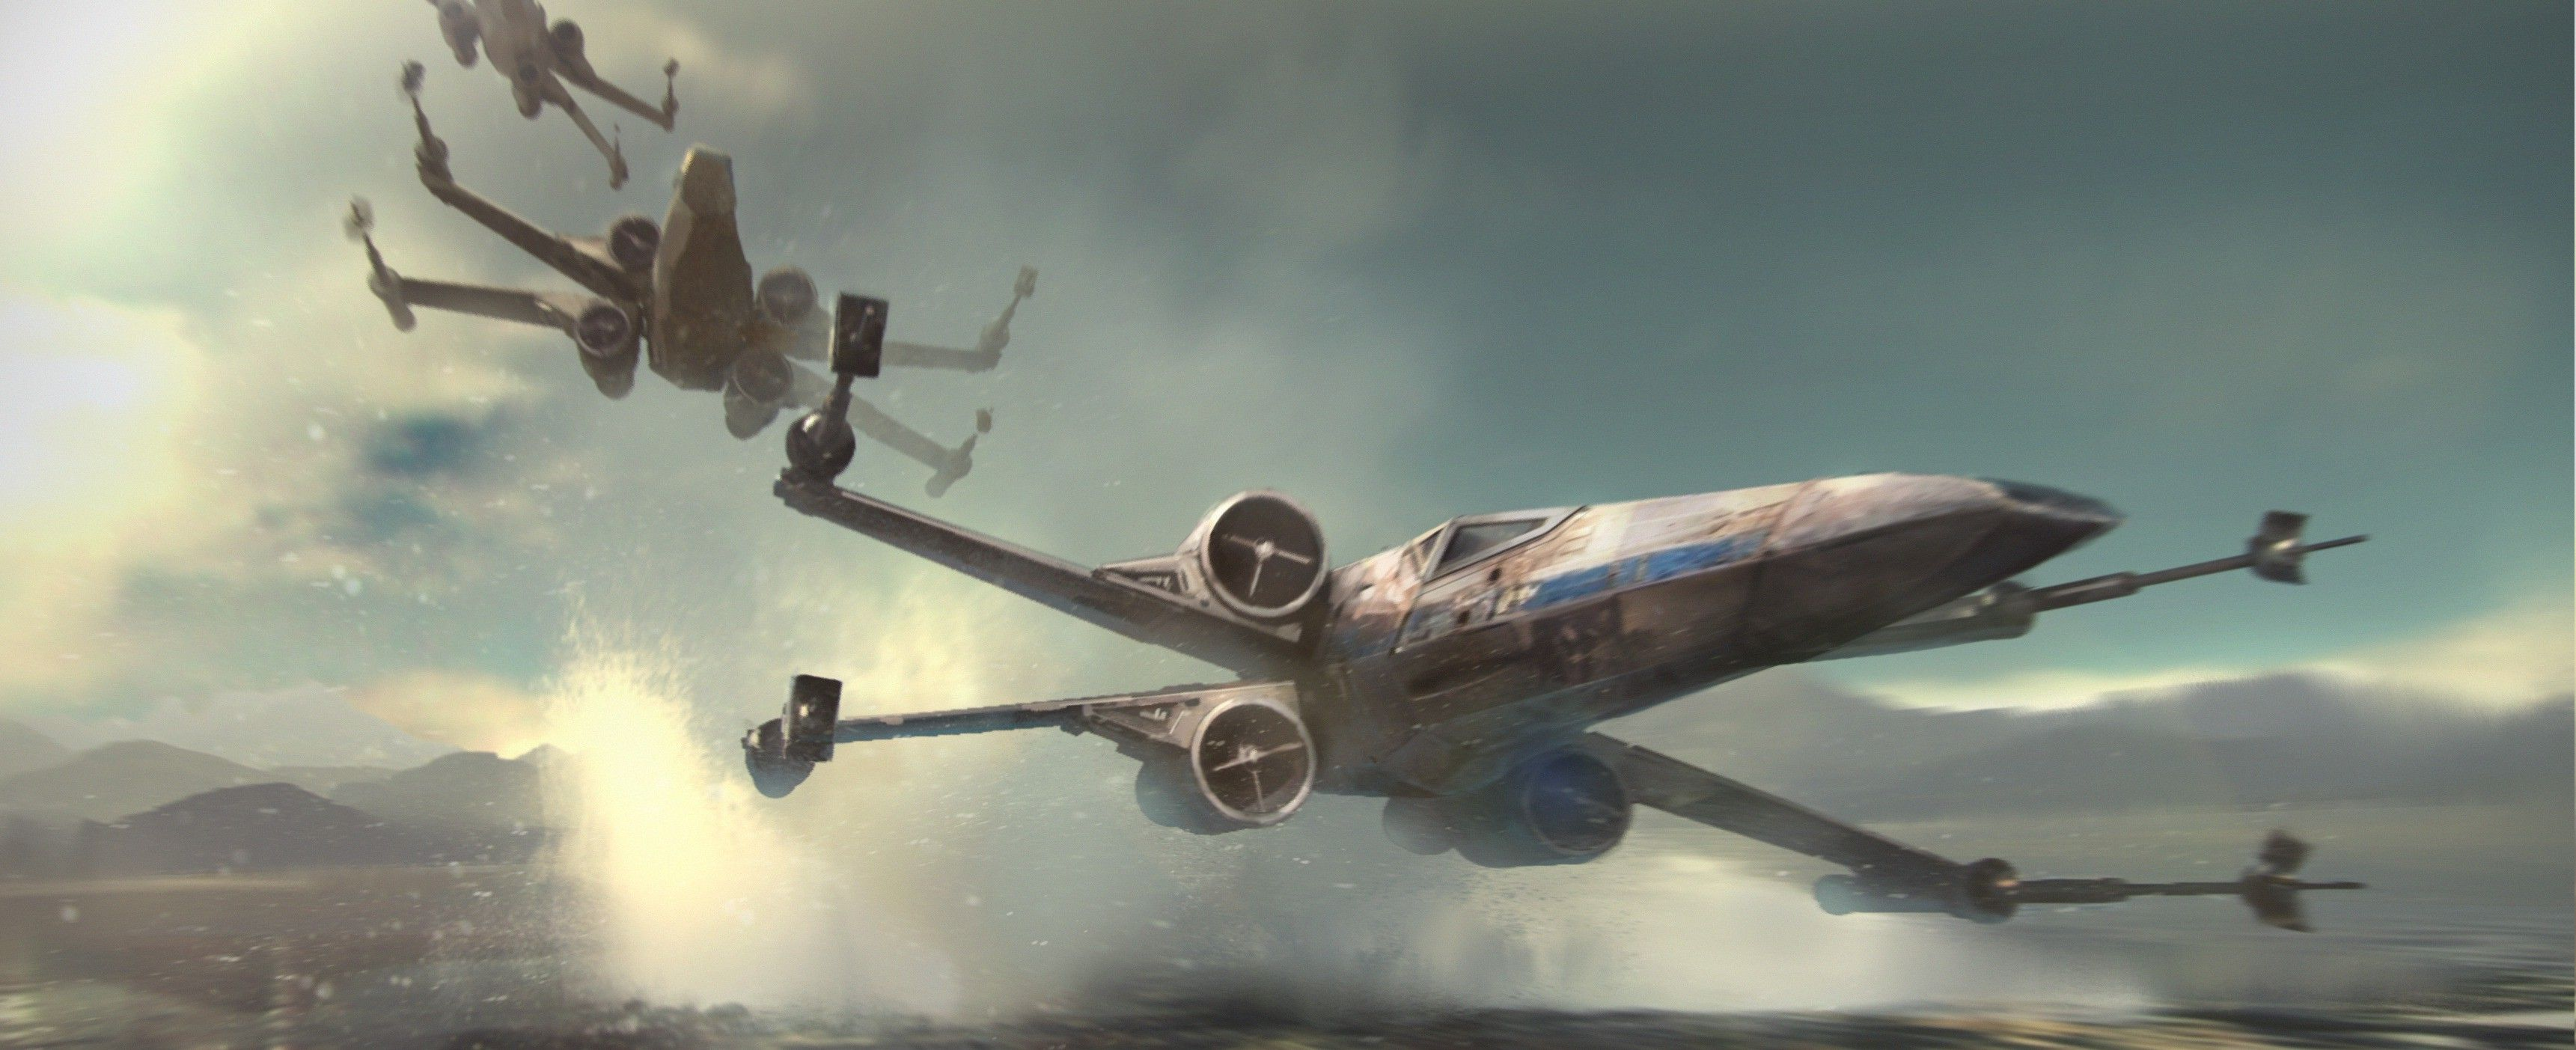 star wars x wing minimalism wallpapers hd desktop and mobile hd wallpapers pinterest wallpaper